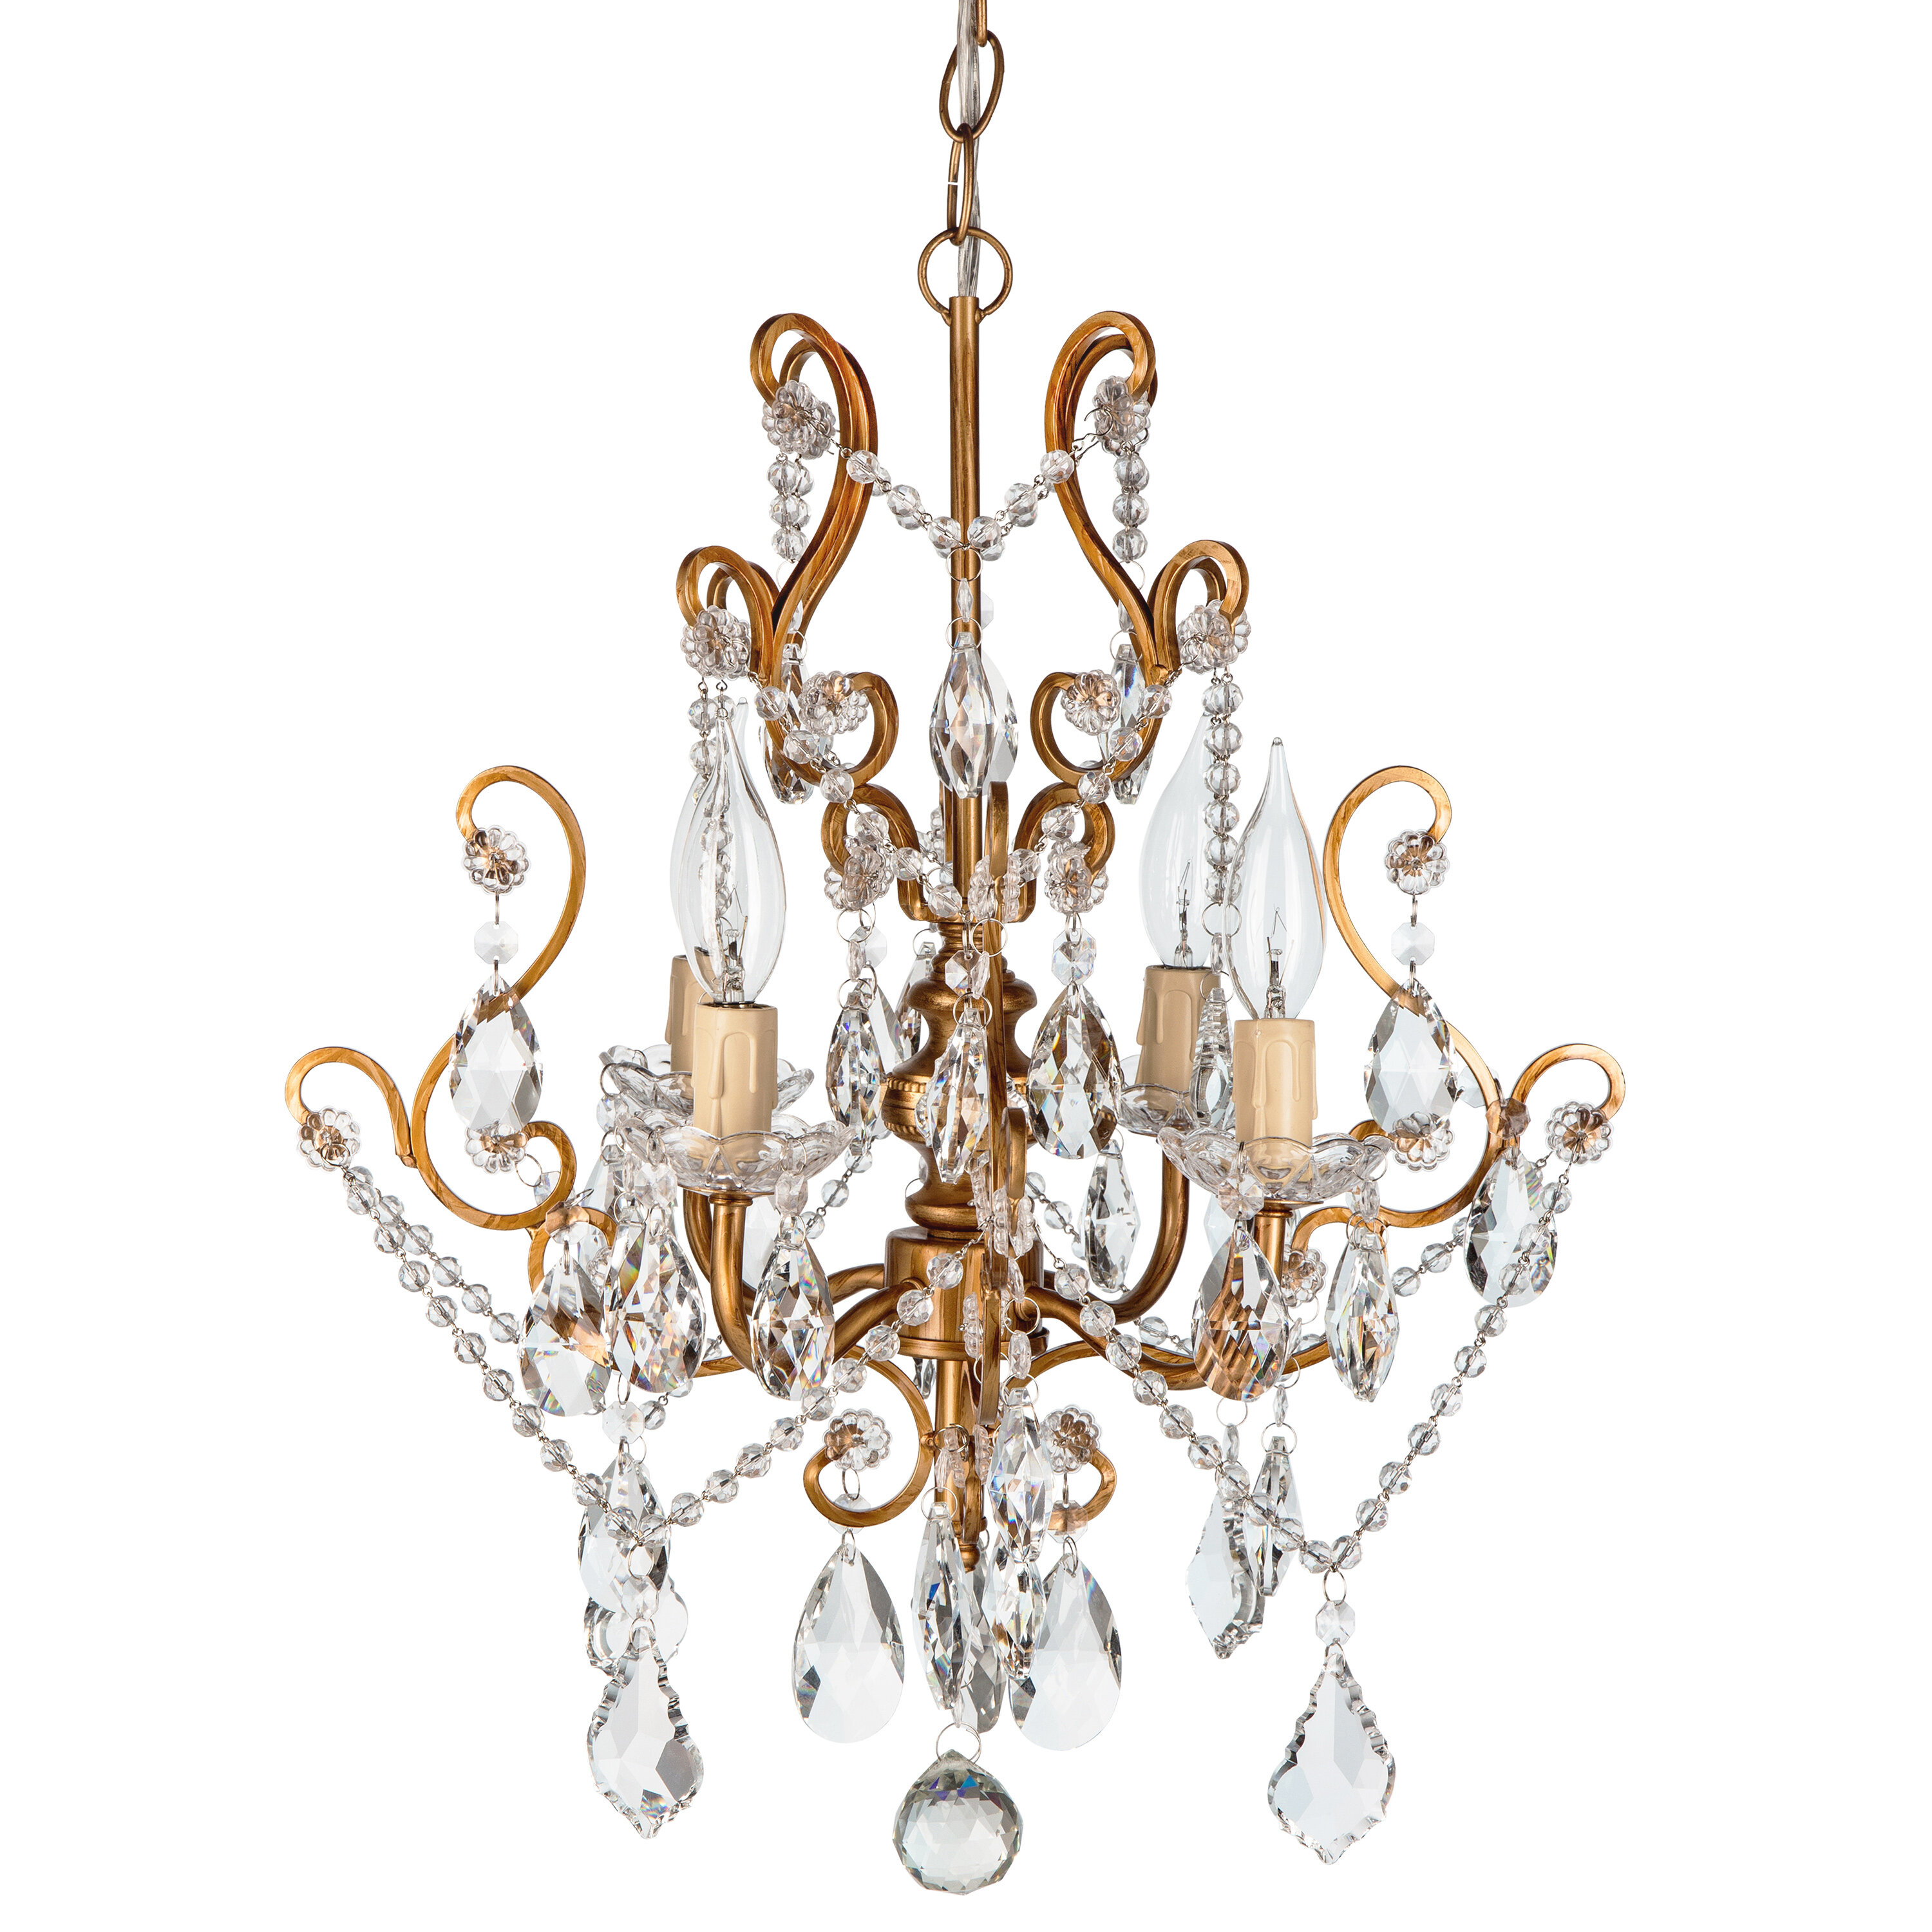 size ollertonavoy dr savoy chandelier wigan chandeliers ceiling wide farmhouse inch of fraser house drop full crystal light tadpoles mix gorgeous fan mini